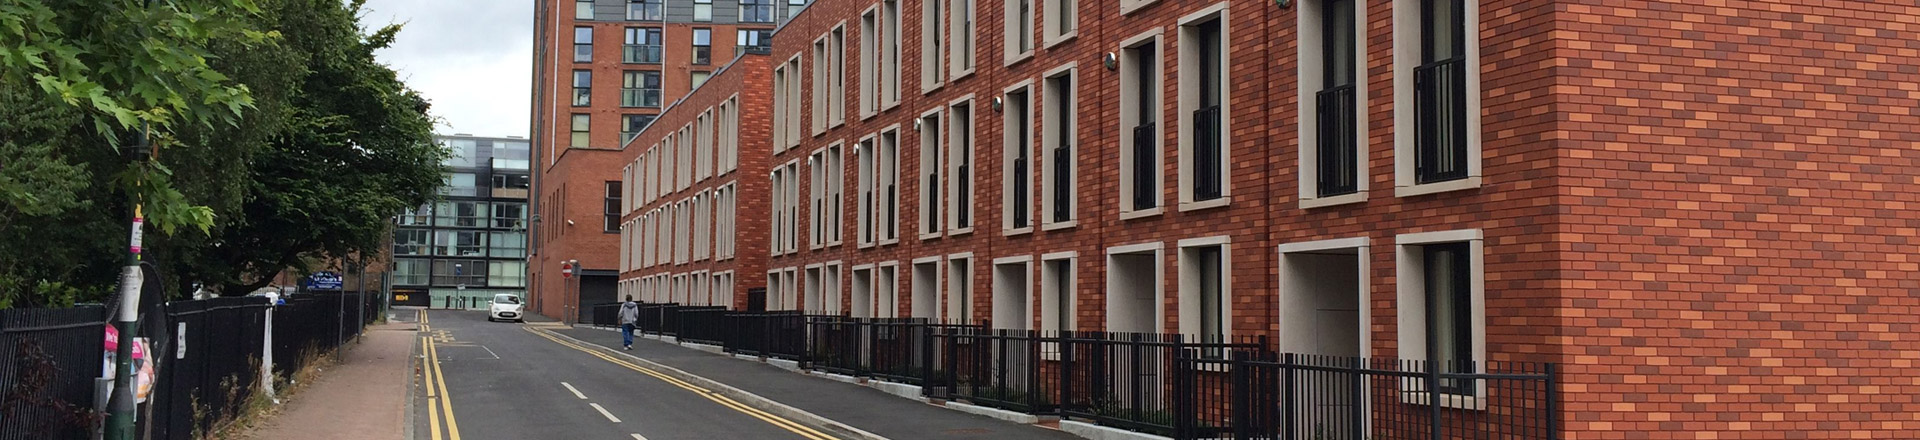 Pressure Washing in Salford and the North West - HCS Cleaning Services